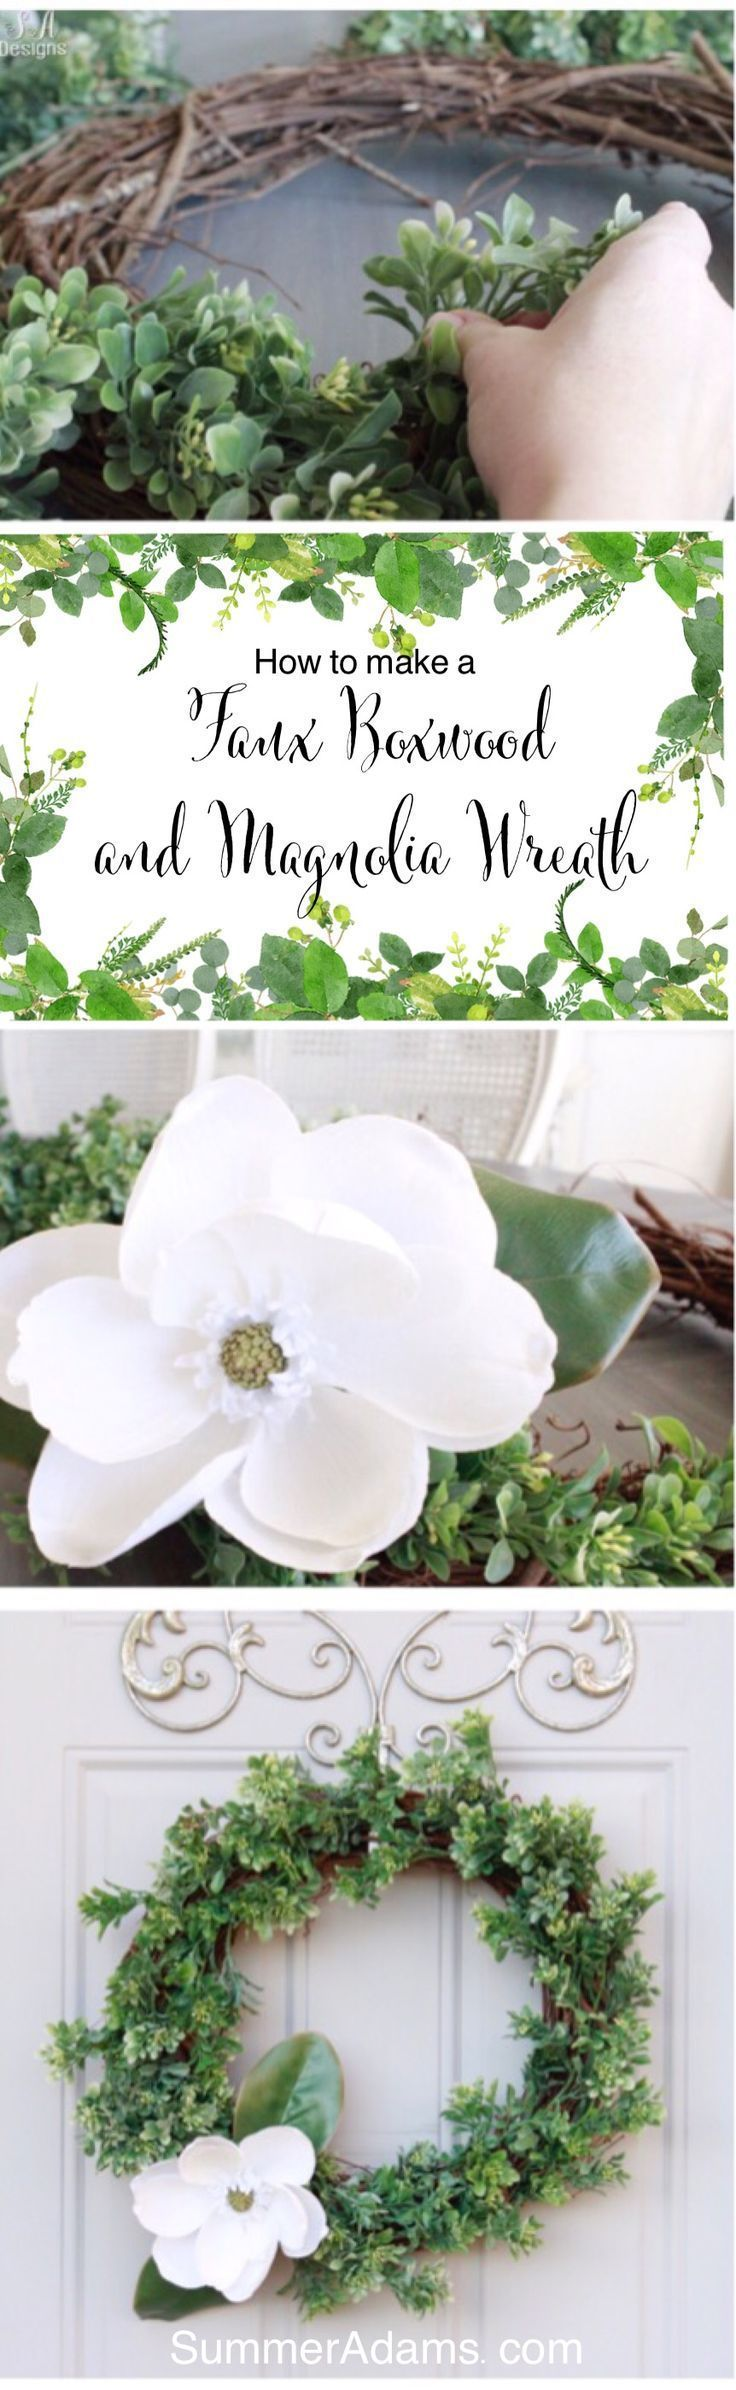 Photo of How To Make A Faux Boxwood & Magnolia Wreath – Summer Adams